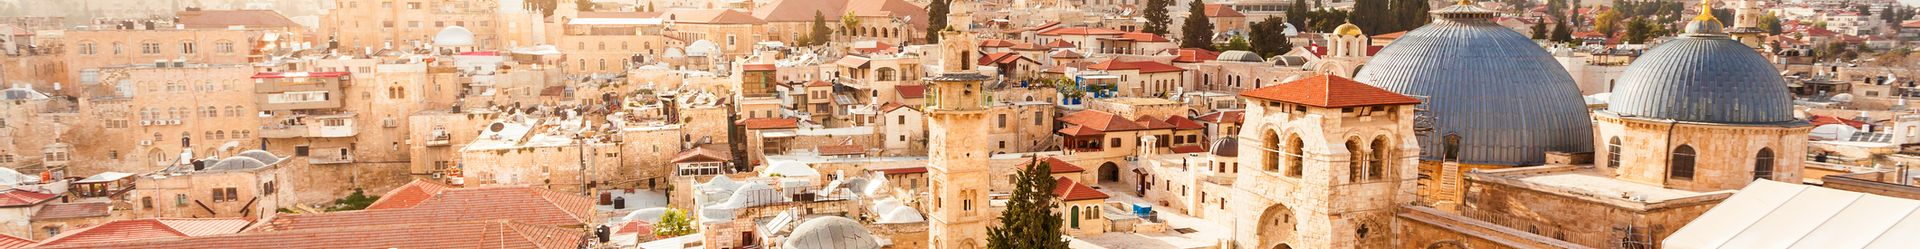 Old City Jerusalem from above. Church of the Holy Sepulchre©iStock-seregalsv-613303216.jpg